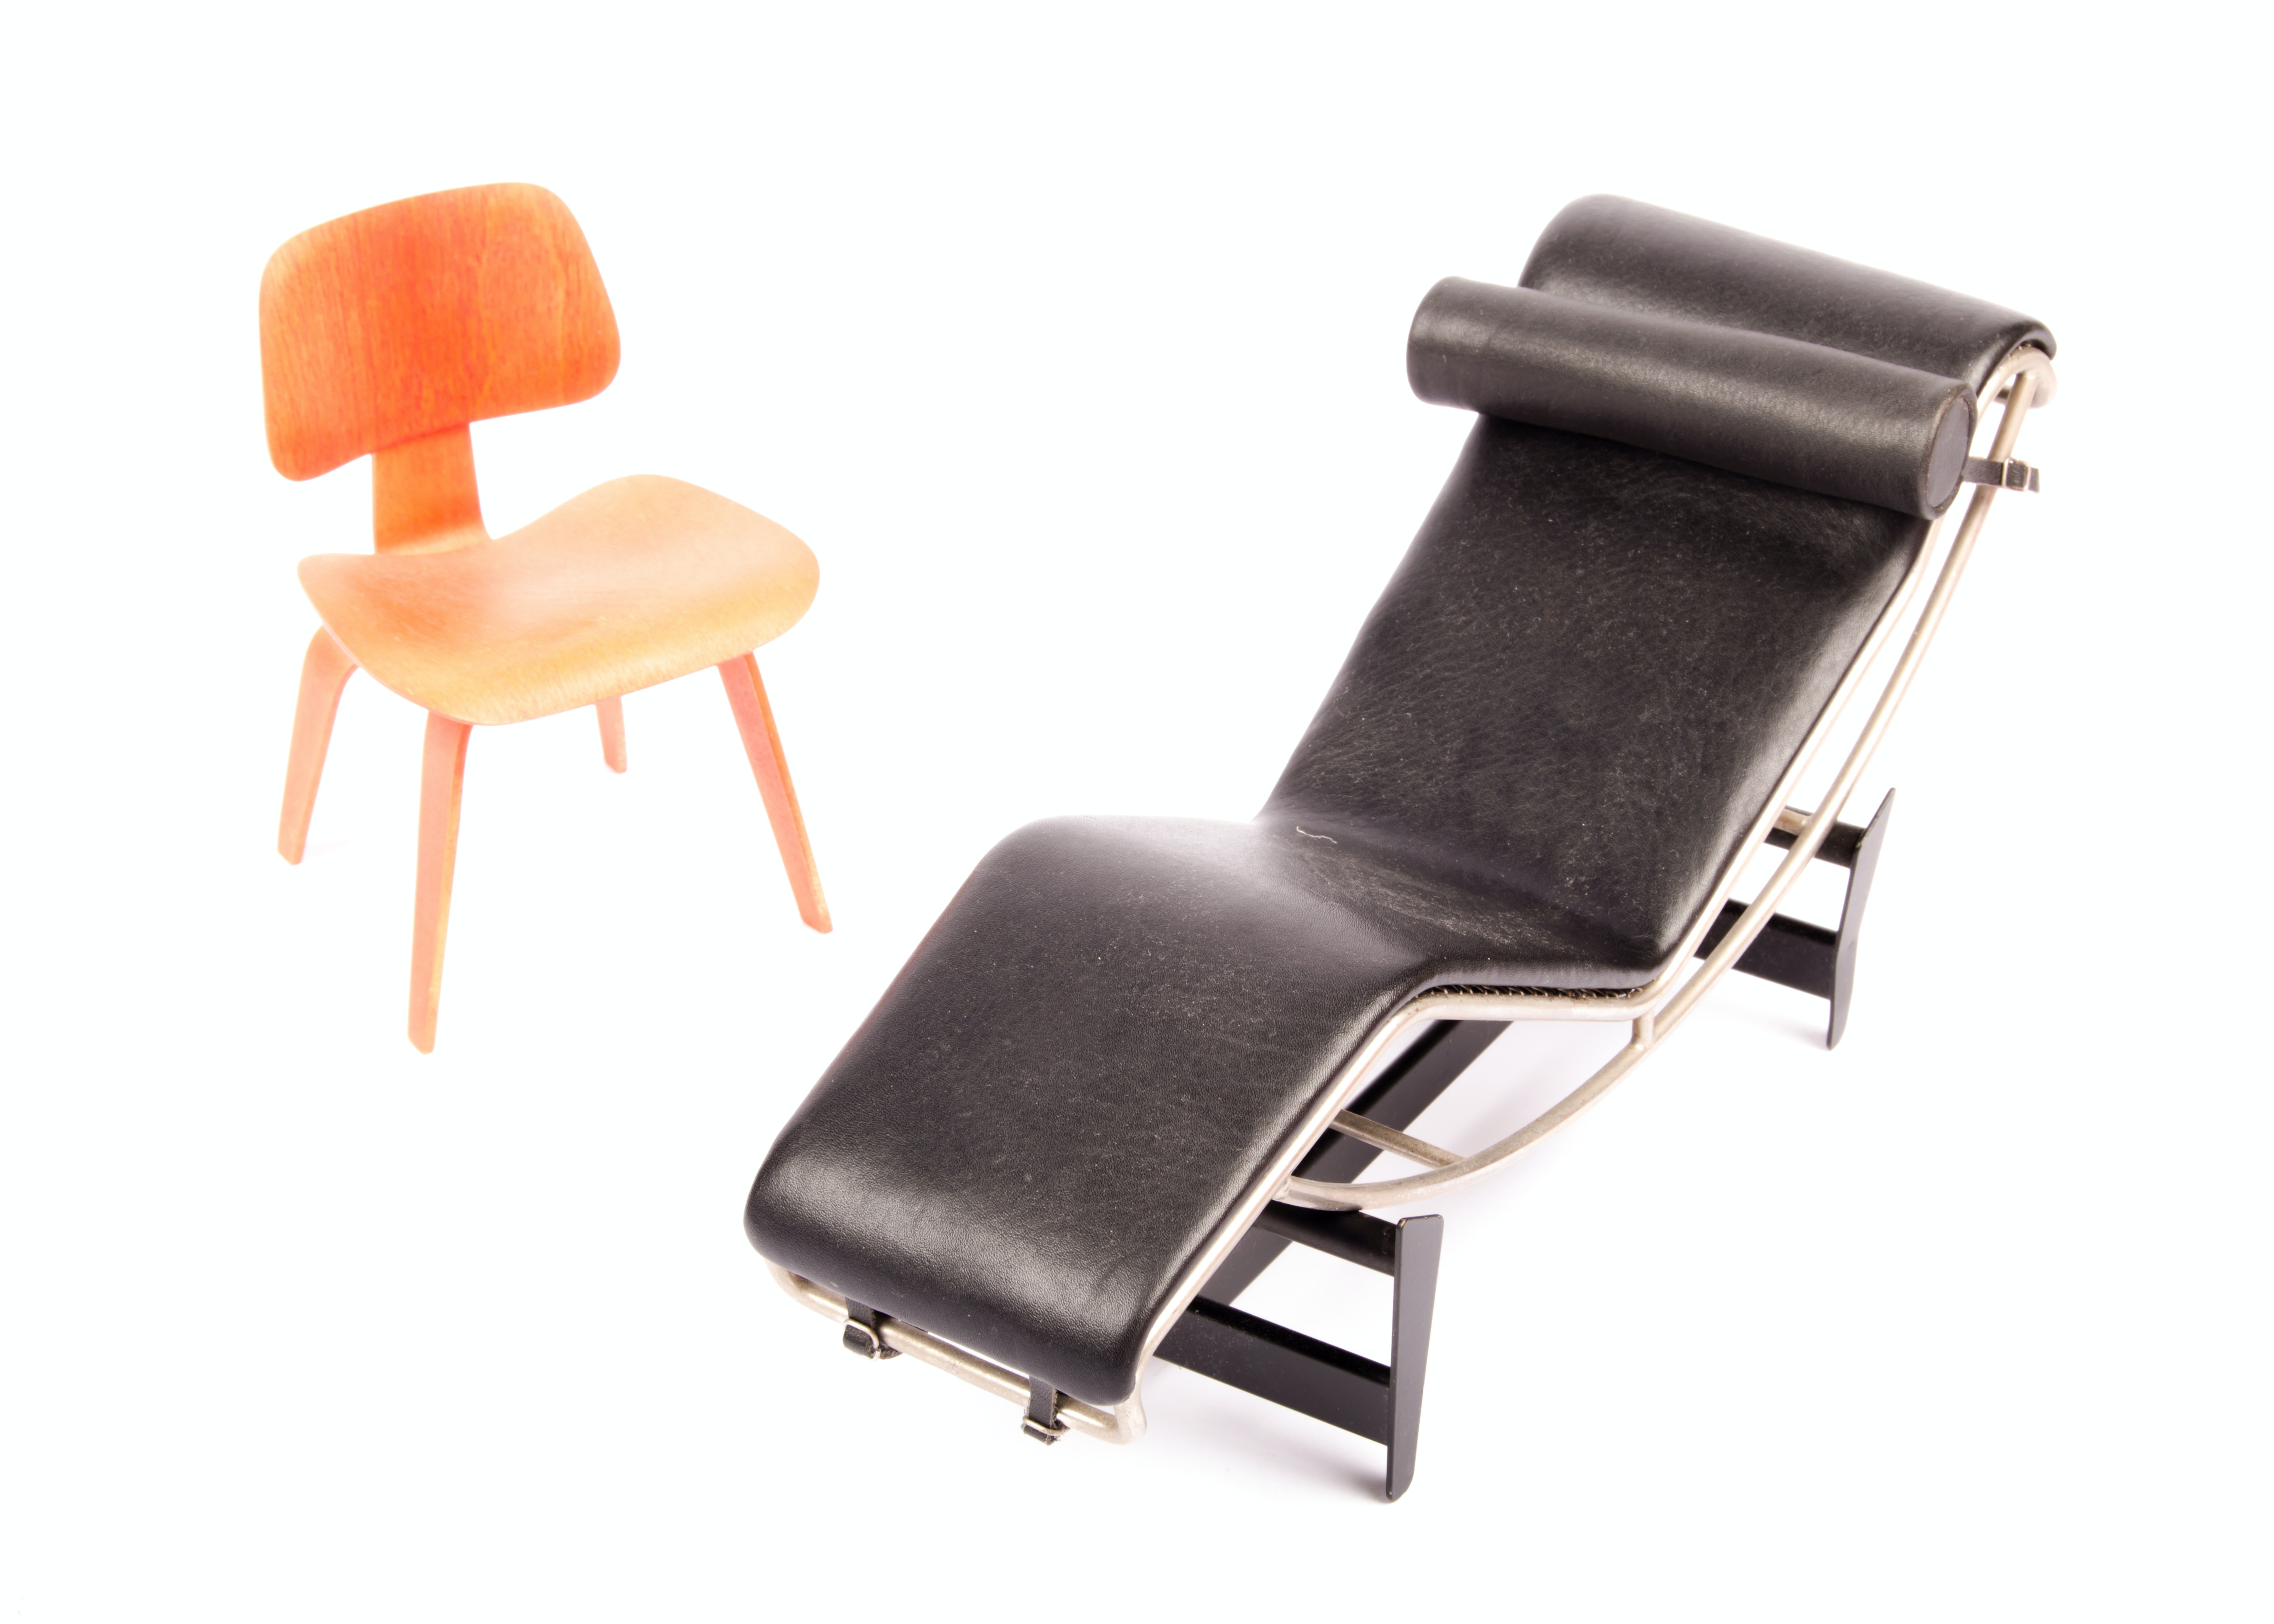 Miniature Eames Chair And Lc4 Chaise Lounge By Vitra Design : Ebth